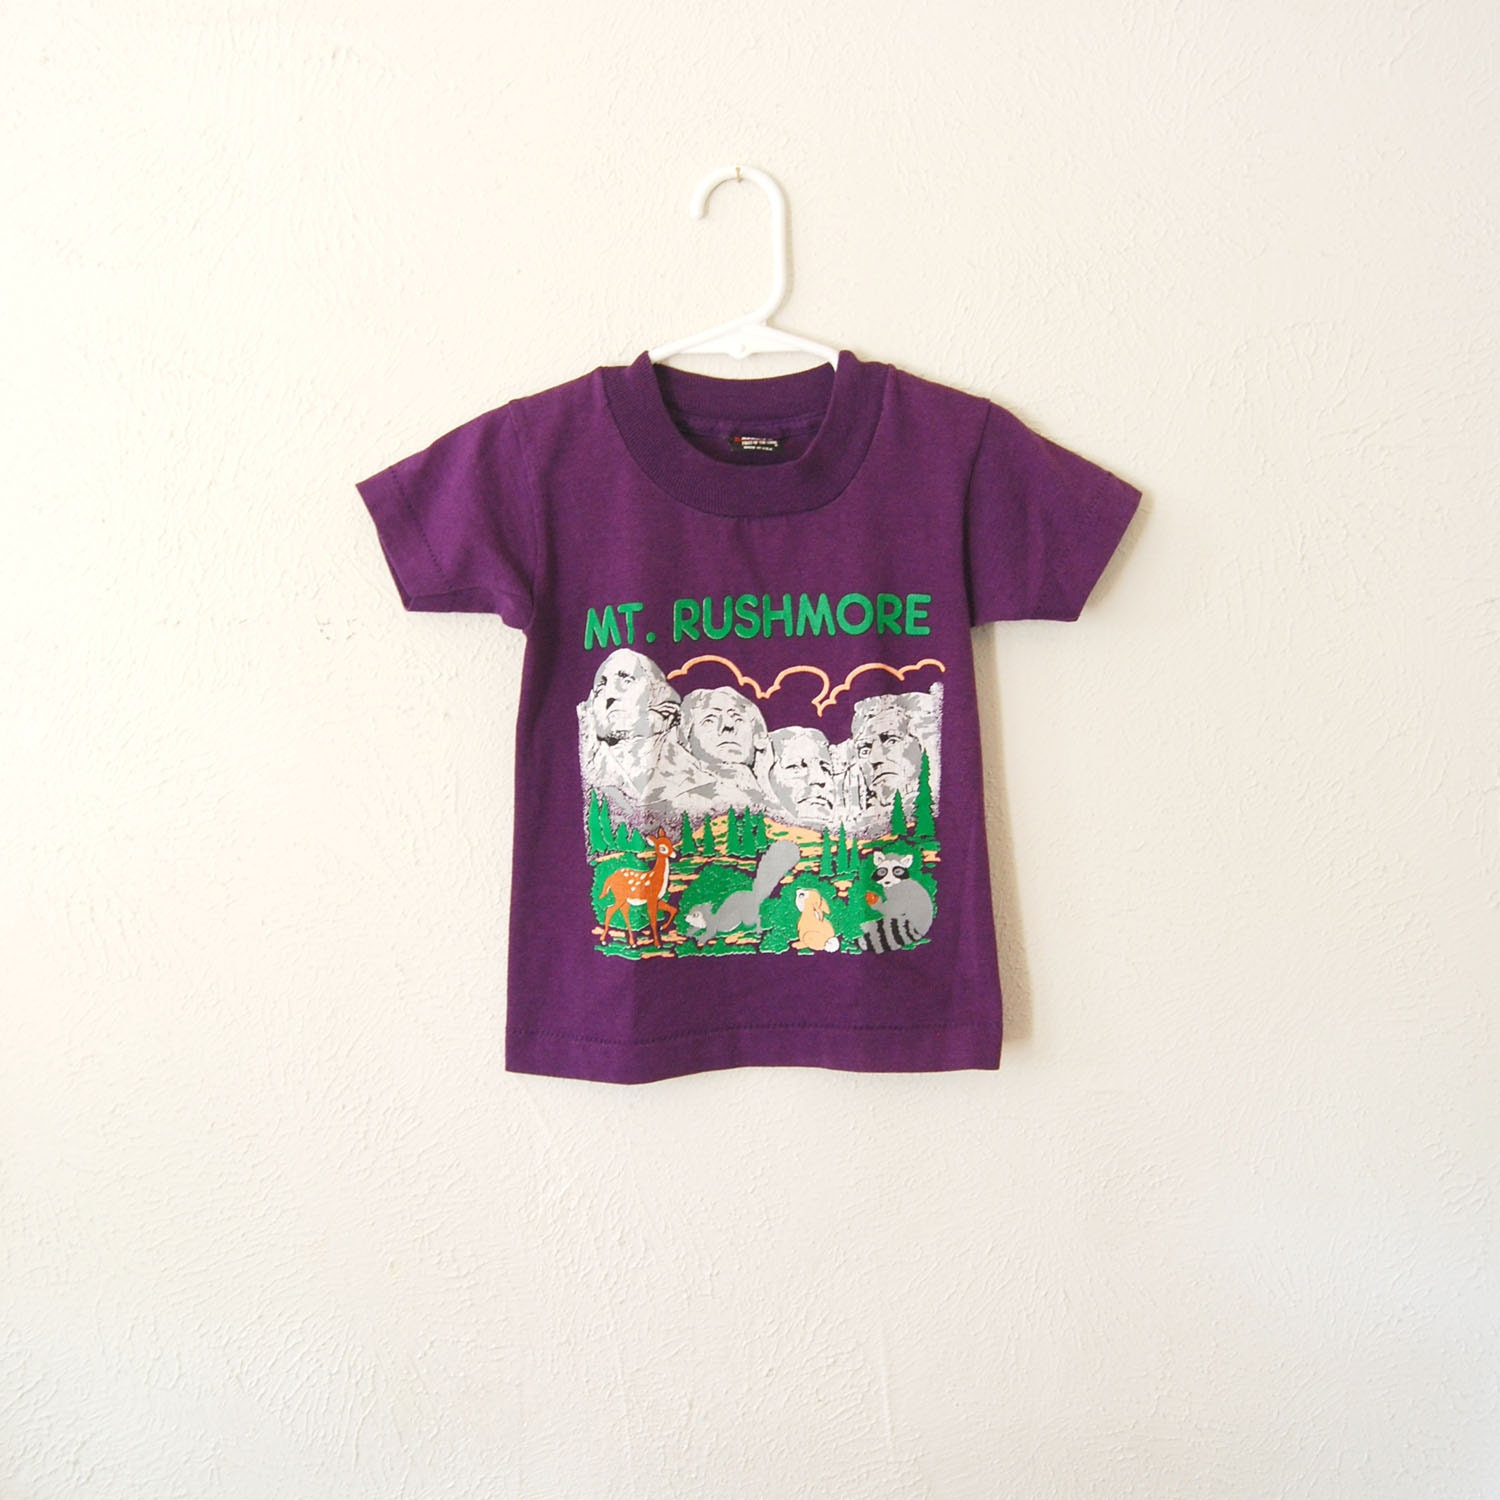 vintage childrens mt rushmore t-shirt - olliesvintage